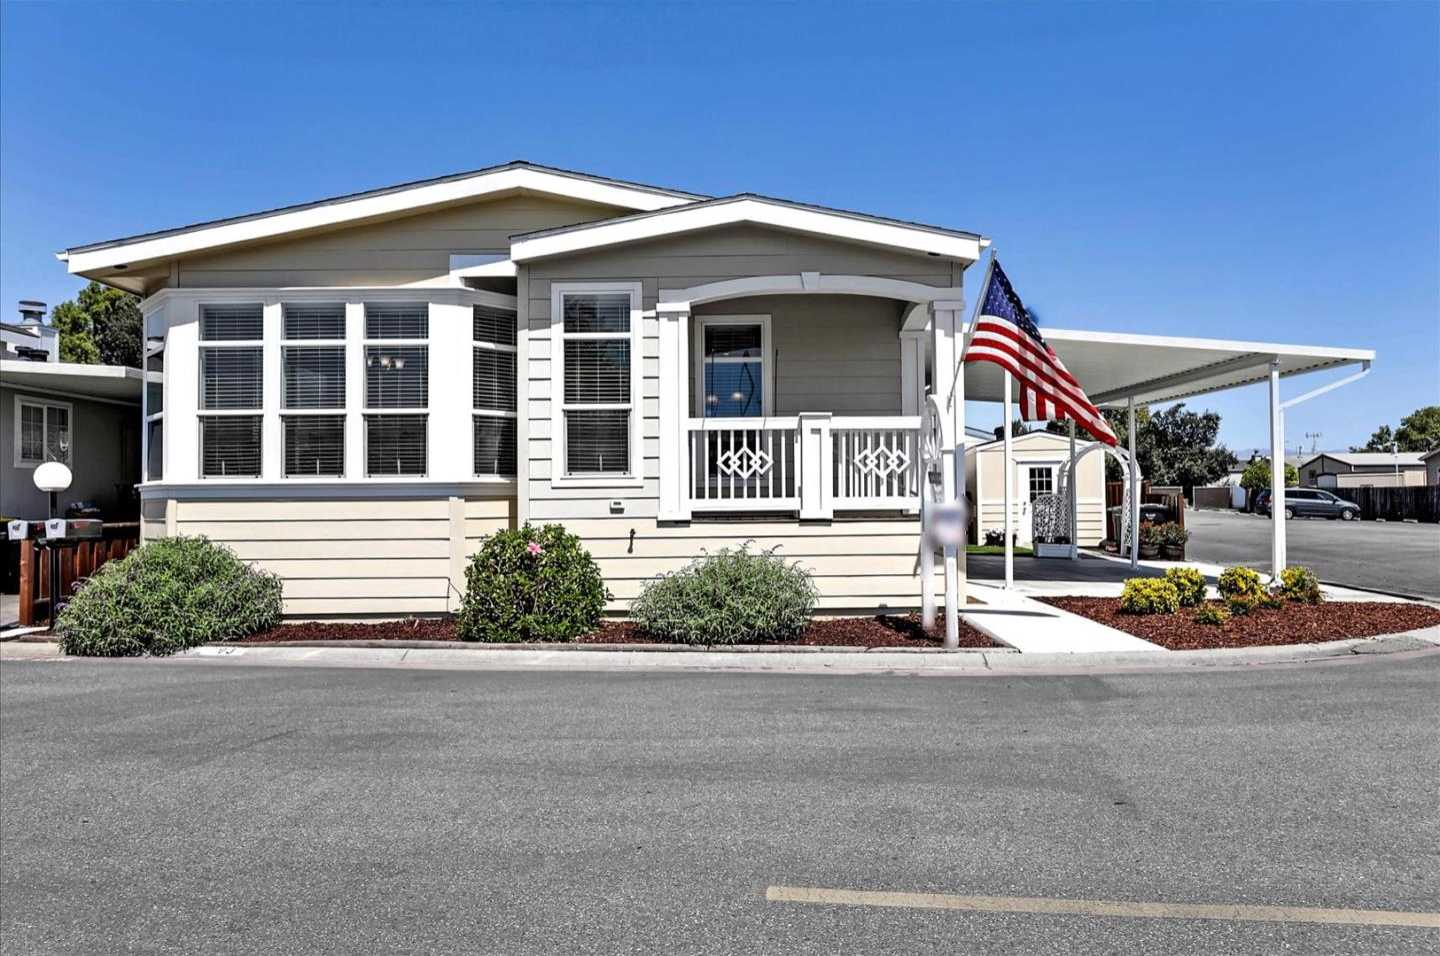 $419,000 - 3Br/2Ba -  for Sale in Sunnyvale